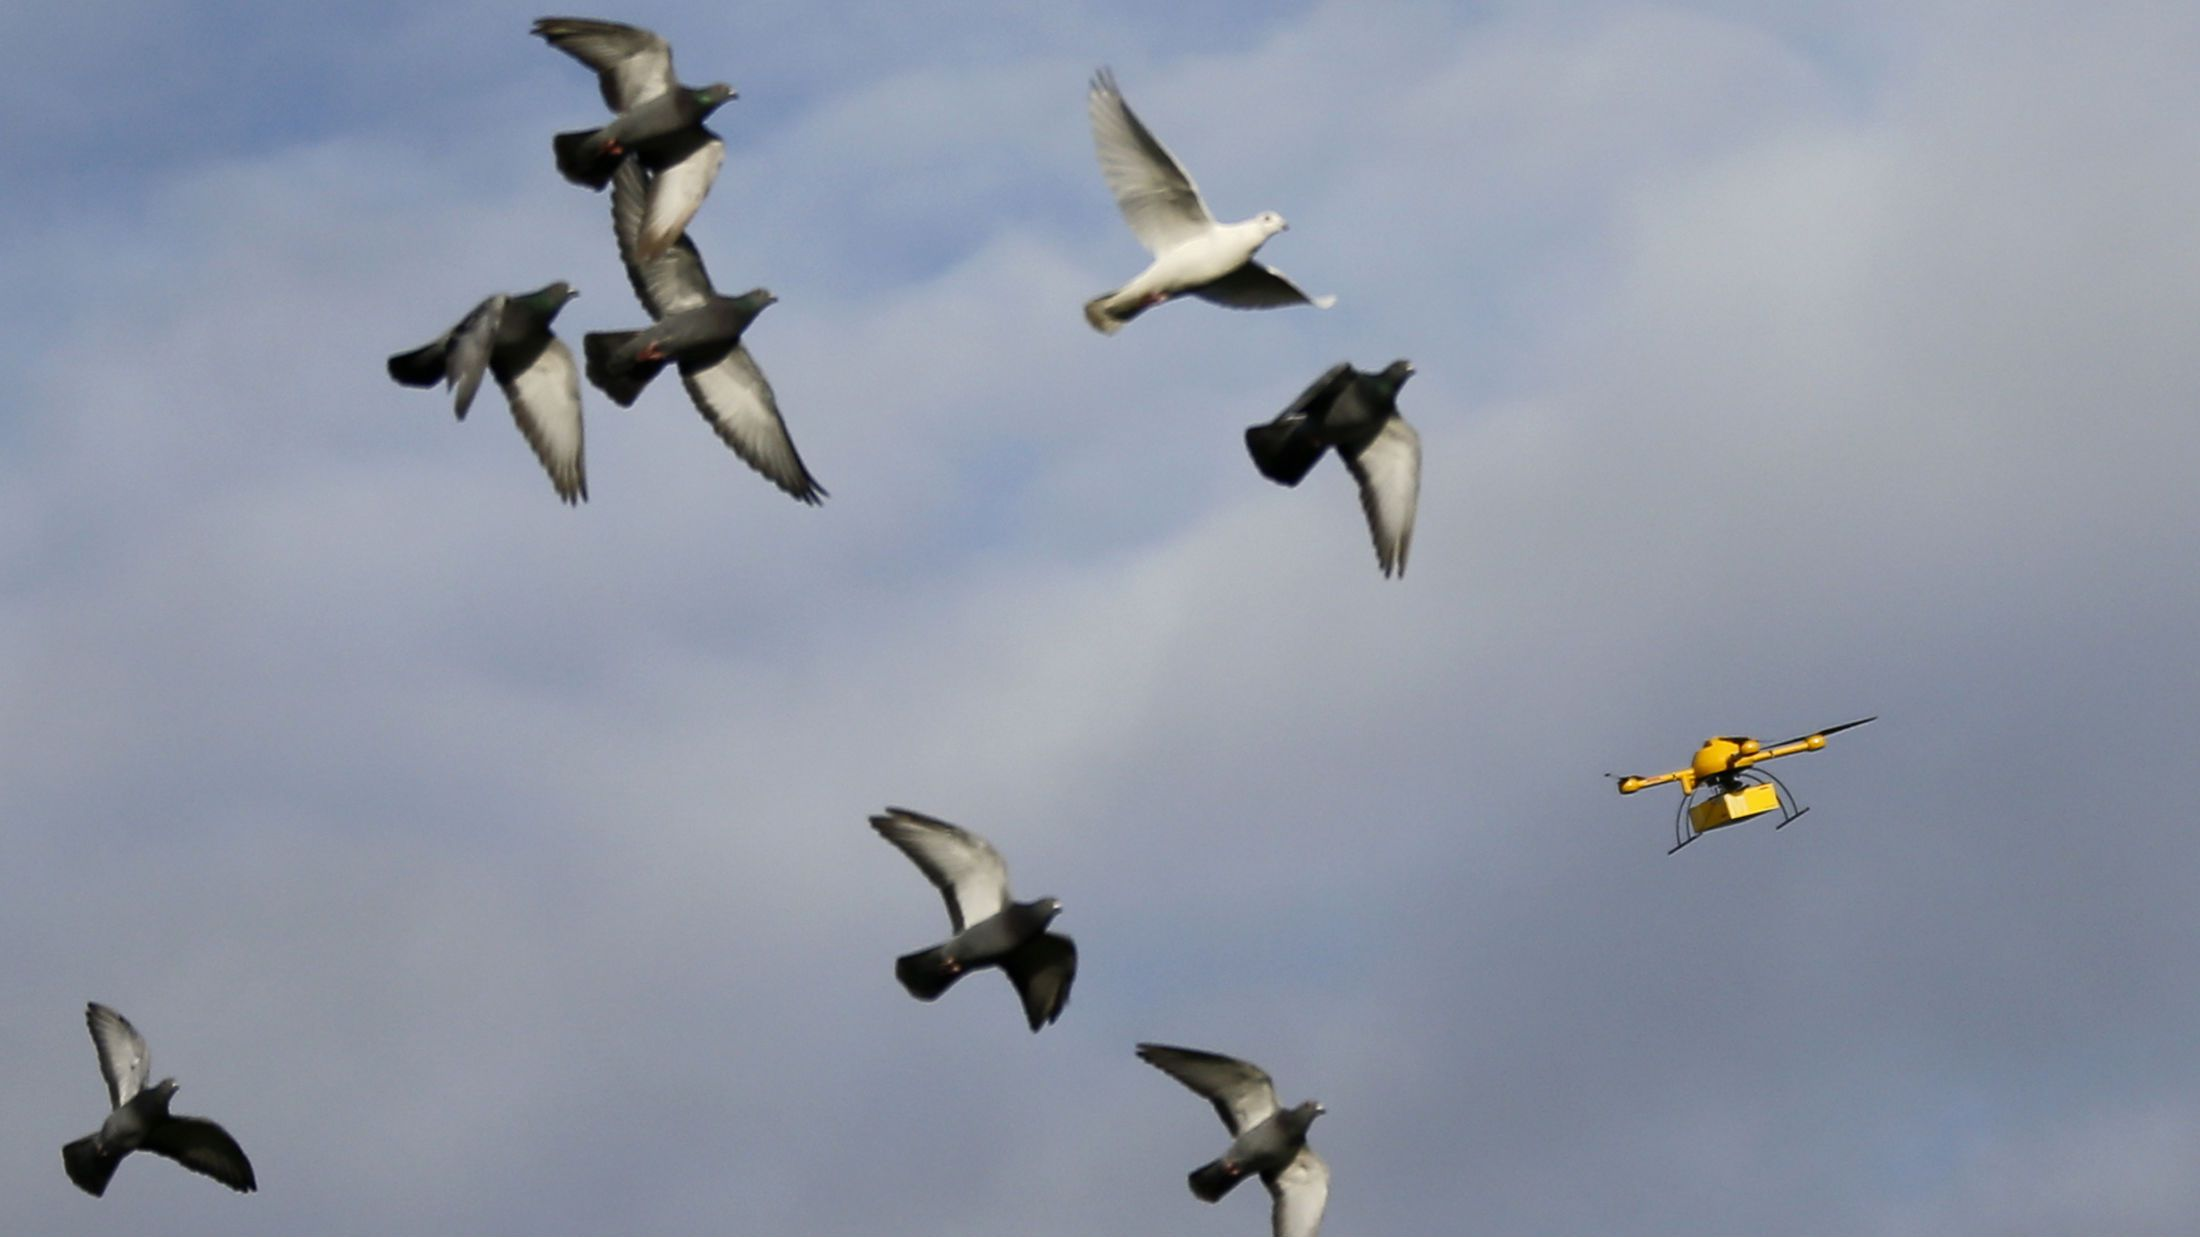 """A flock of pigeons flies with a prototype """"parcelcopter"""" of German postal and logistics group Deutsche Post DHL in Bonn December 9, 2013. DHL on Monday showed its prototype """"parcelcopter,"""" which is a modified microdrone that costs 40,000 euros ($54,900) and can carry packages up to 1.2 kg (2.65 pounds). REUTERS/Wolfgang Rattay"""